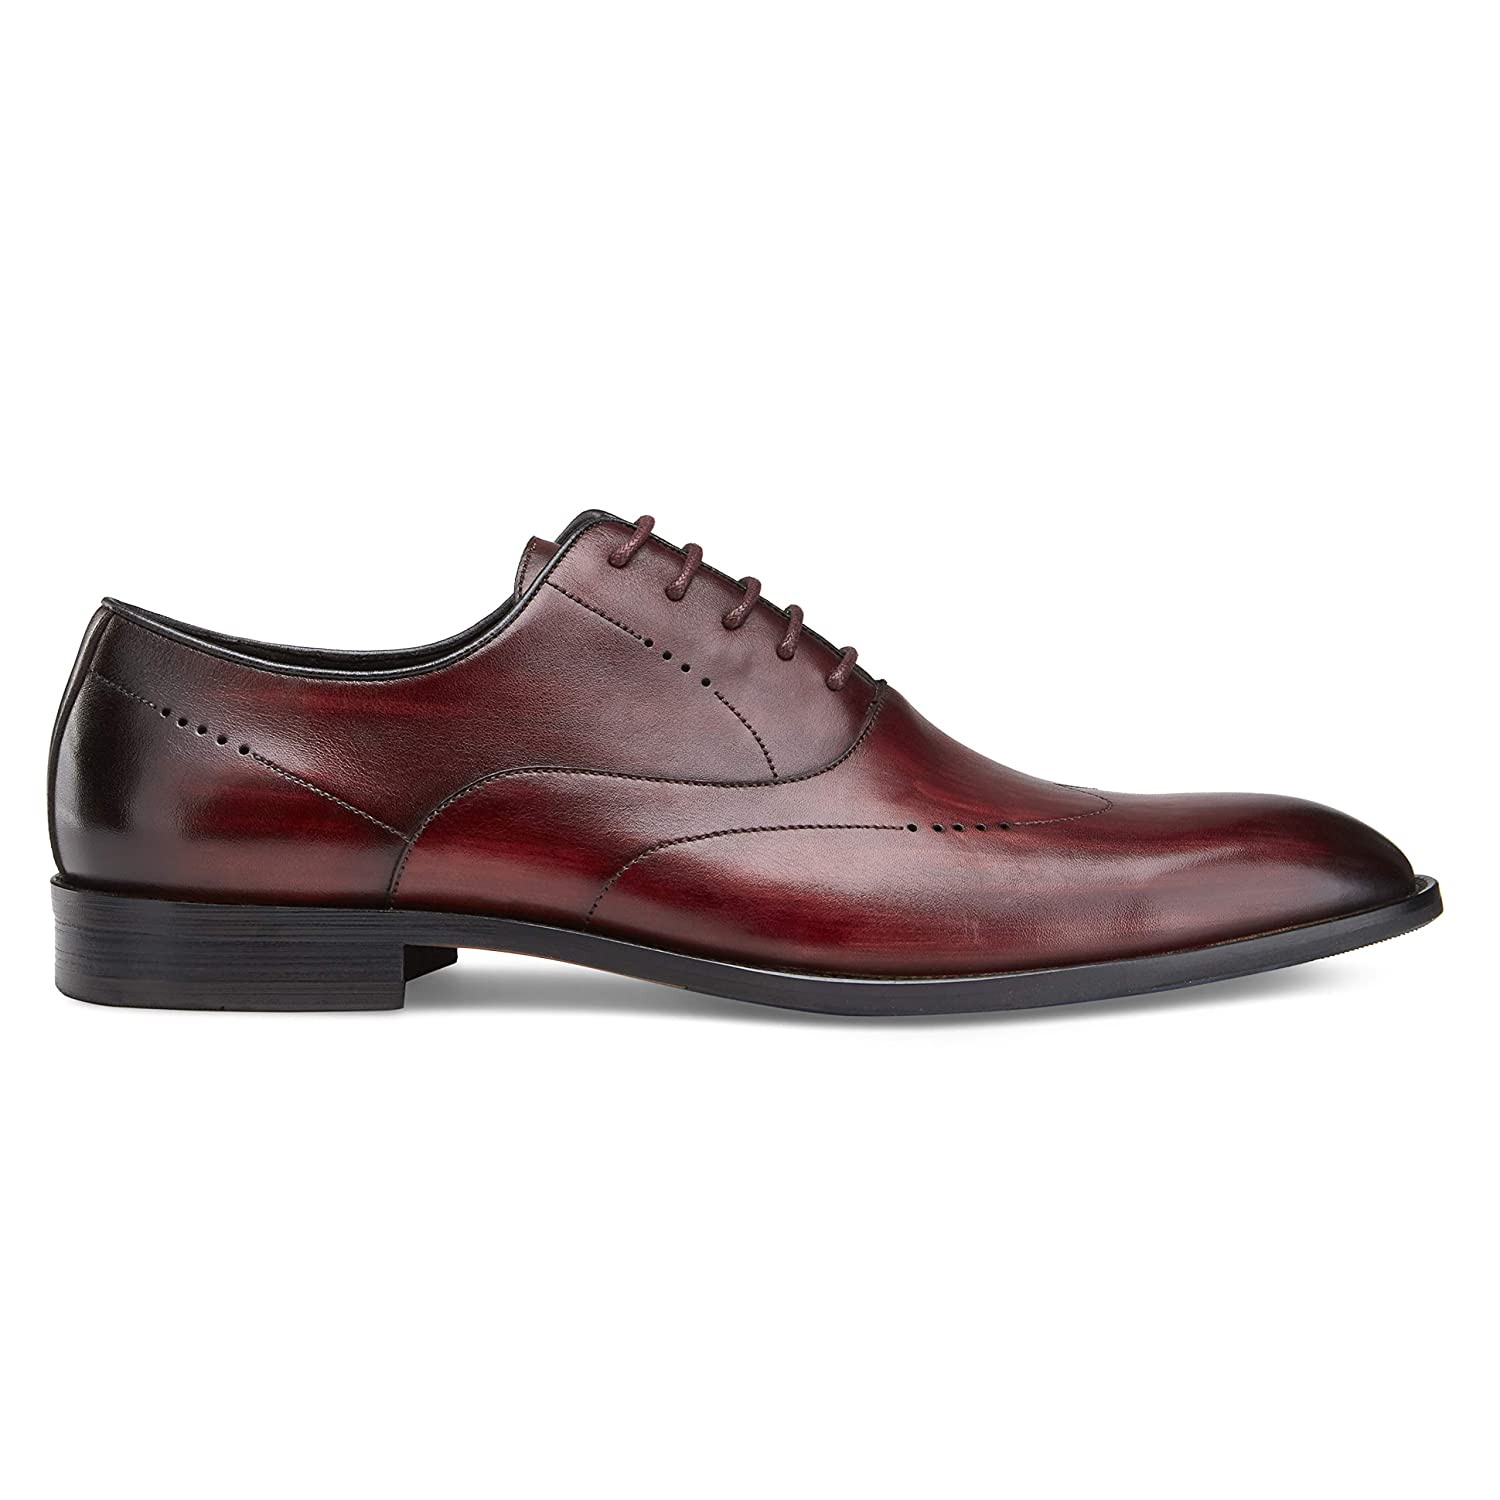 Vintage Foundry The Hahn Dress Shoe Oxford